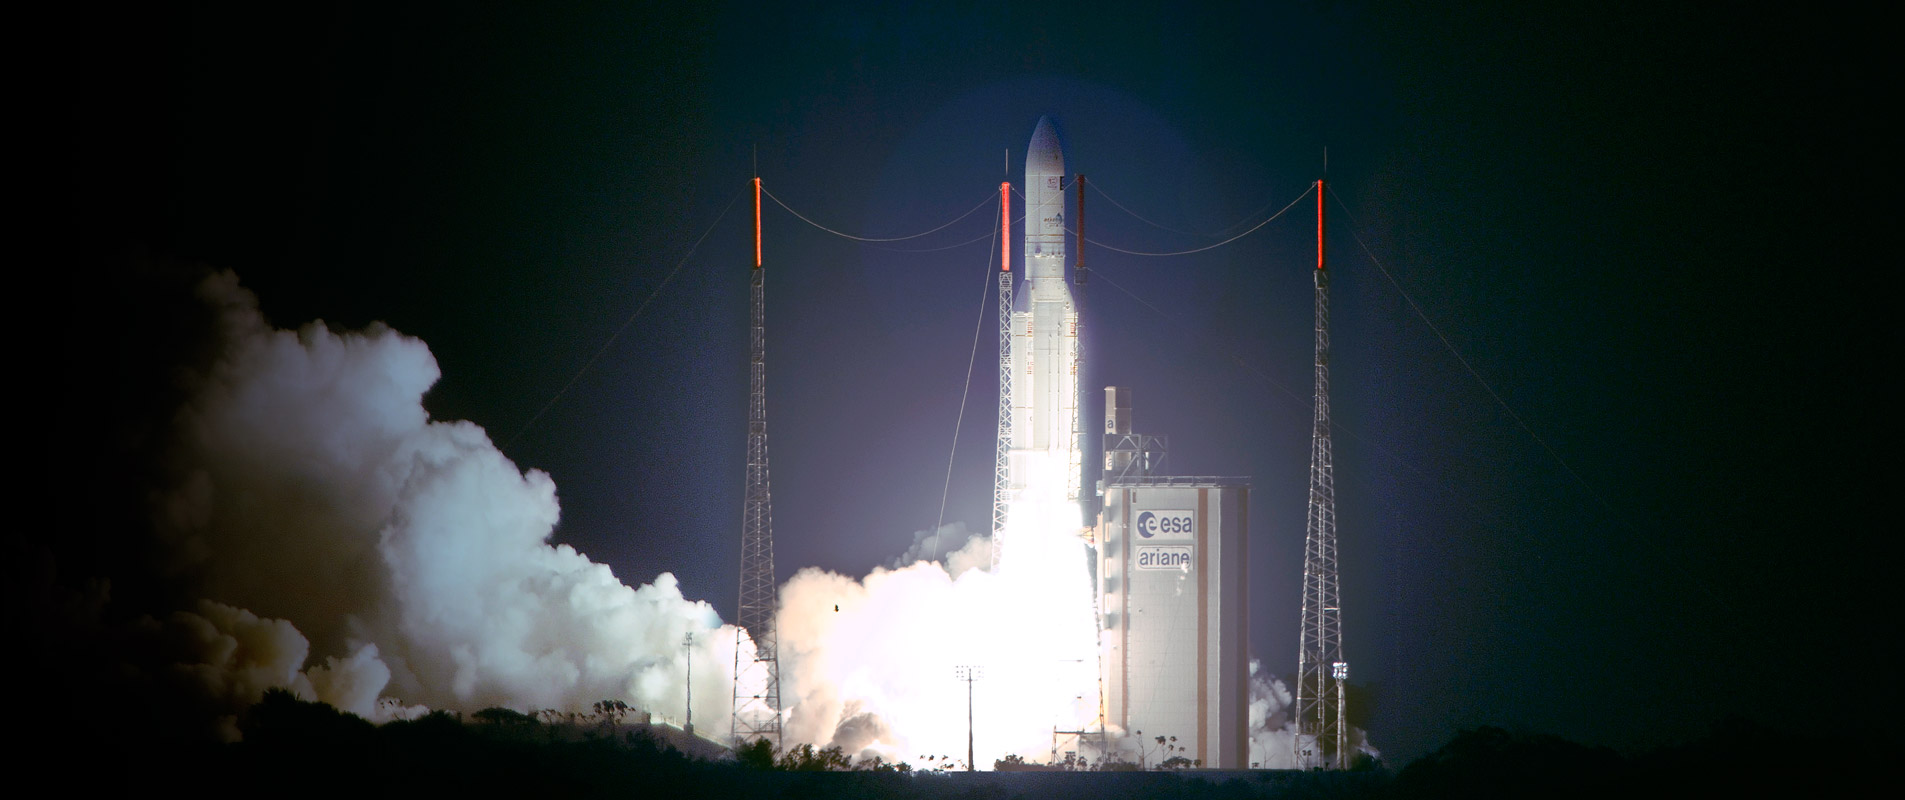 a5-hispasat-launch5